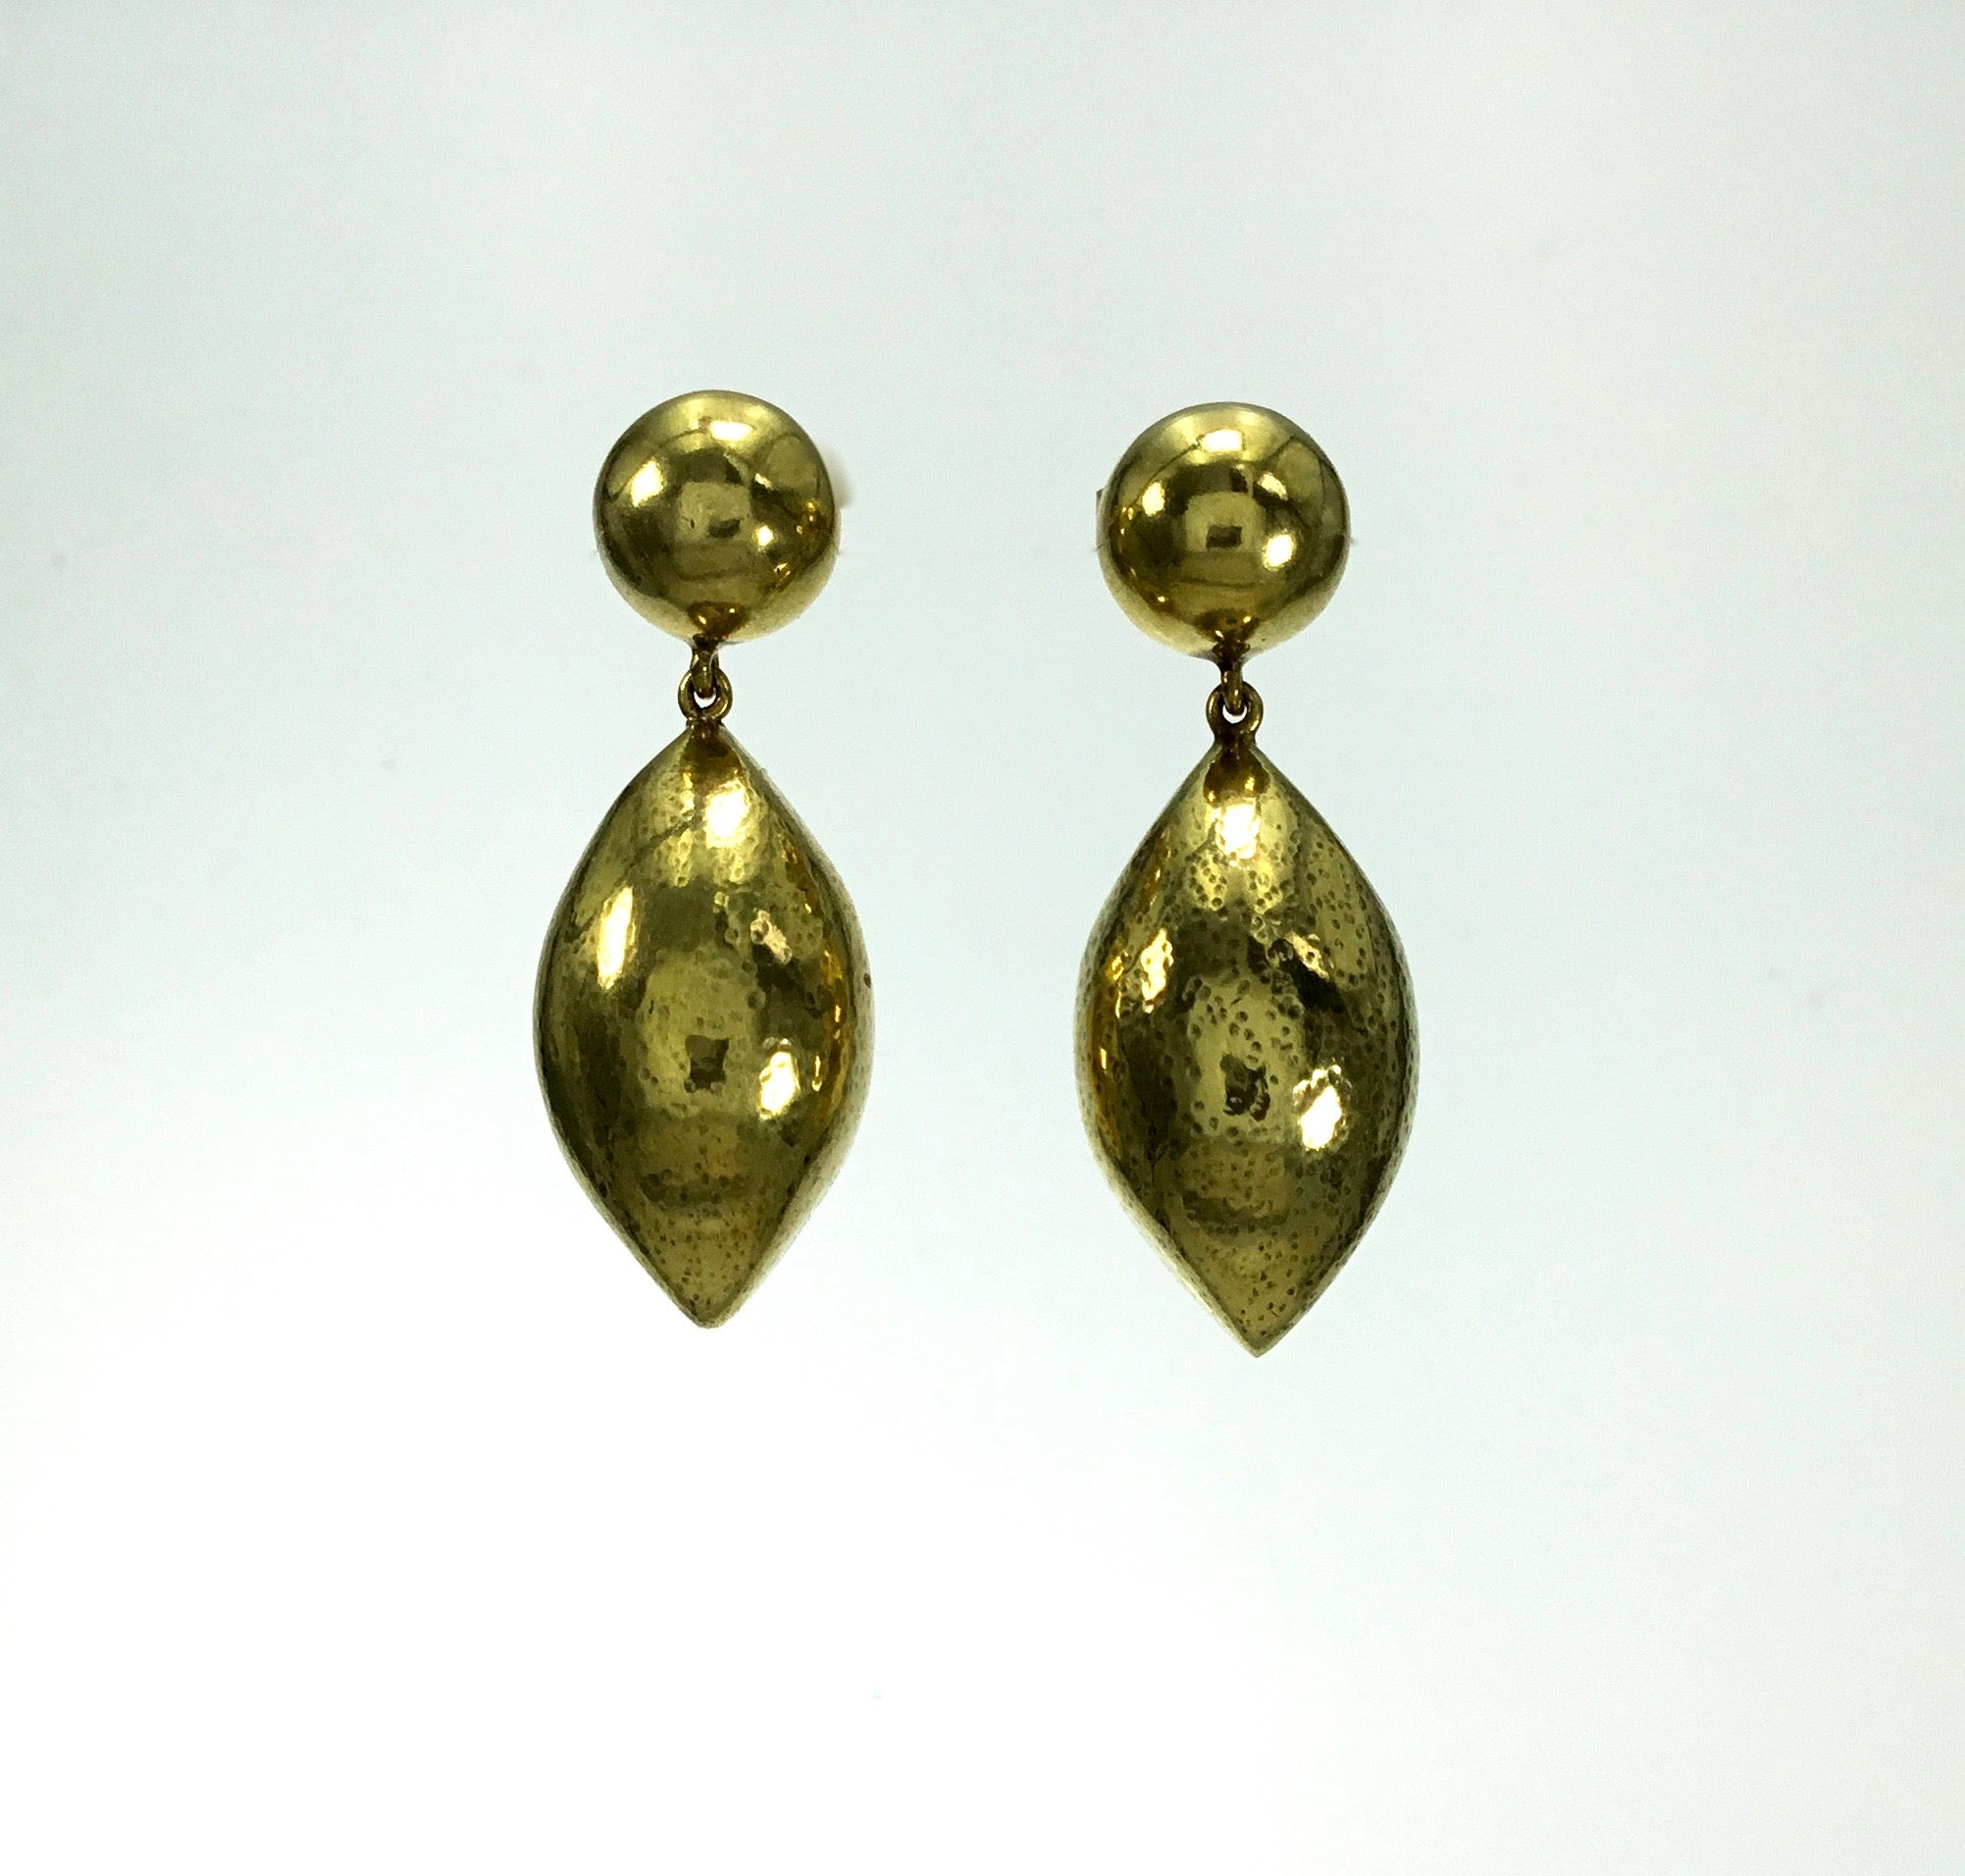 Vaubel Puffed Oval Drop Earrings